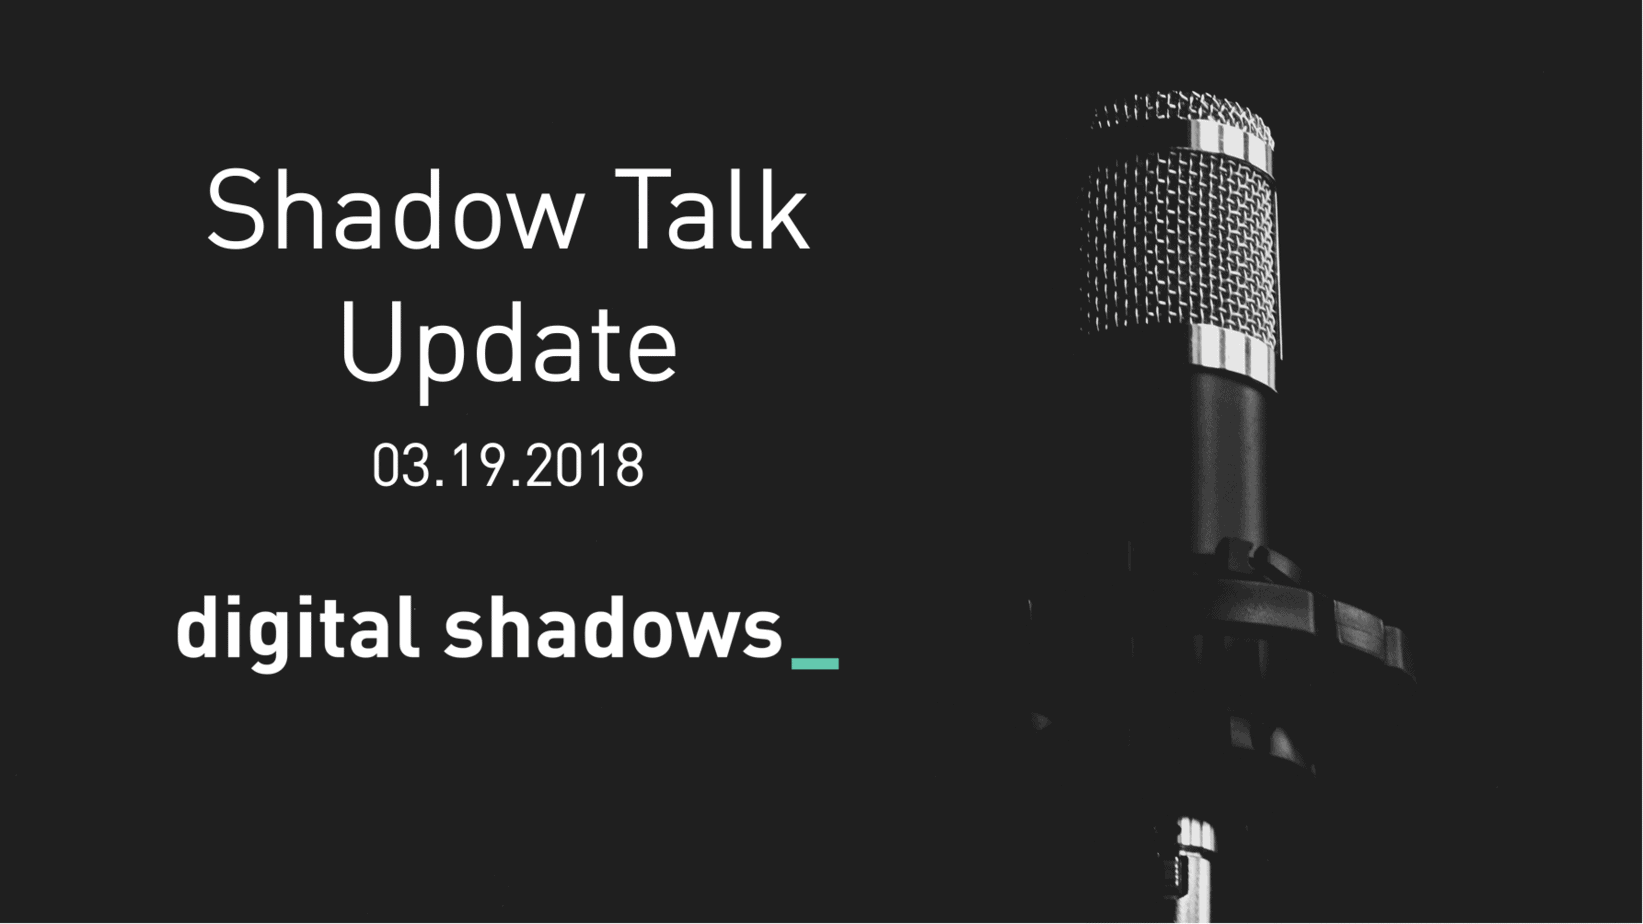 Shadow Talk Update – 03.19.2018